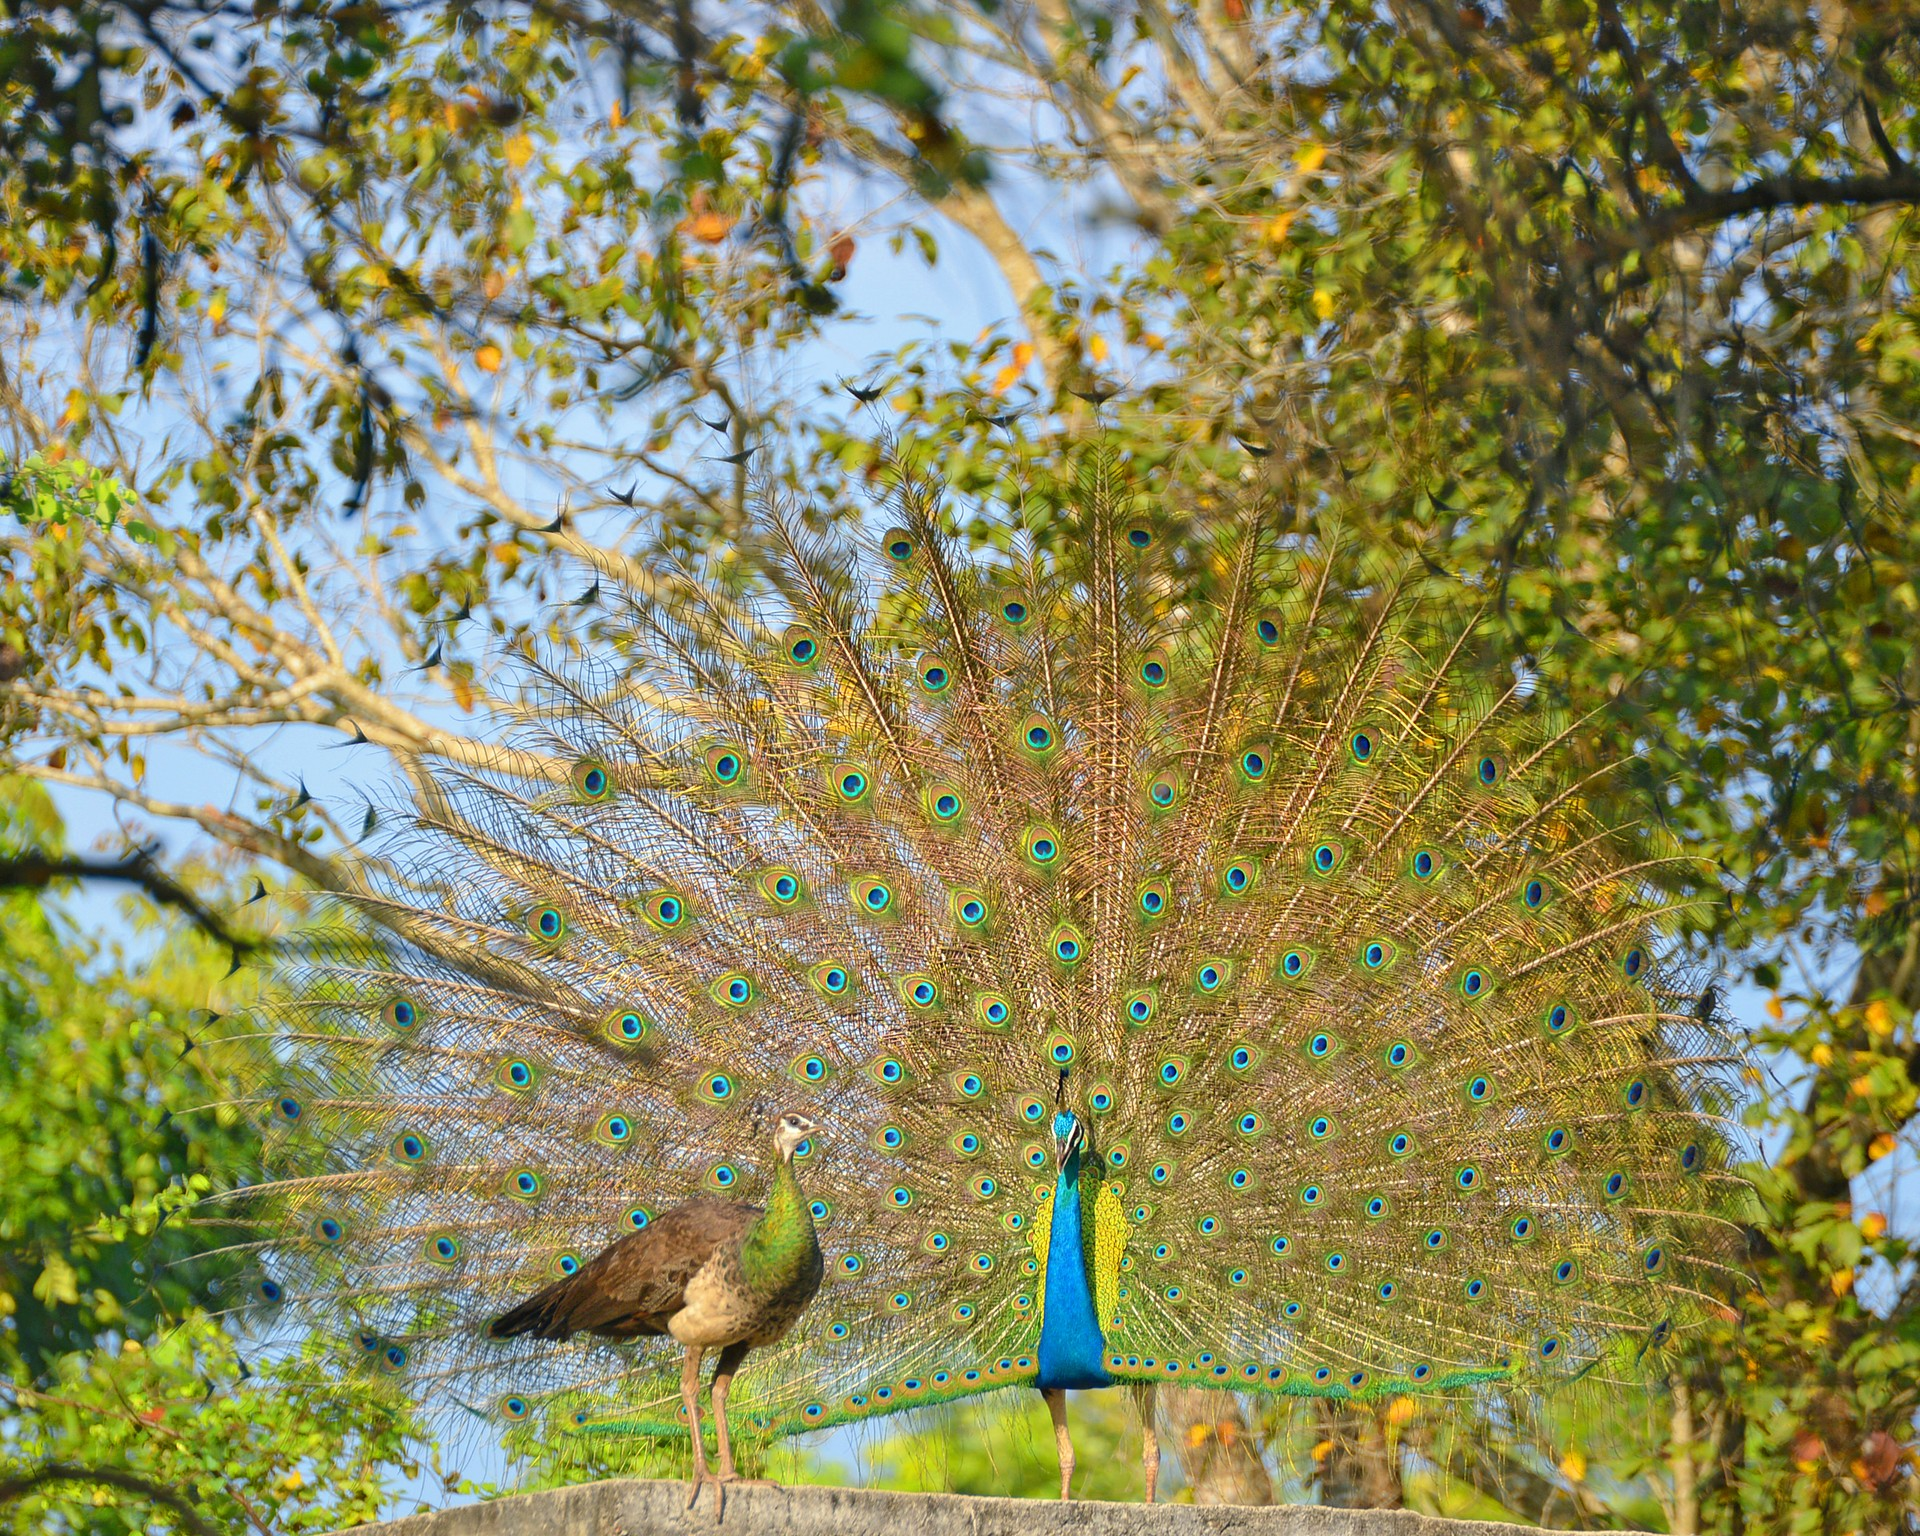 Peacock and peahen in Sri Lanka